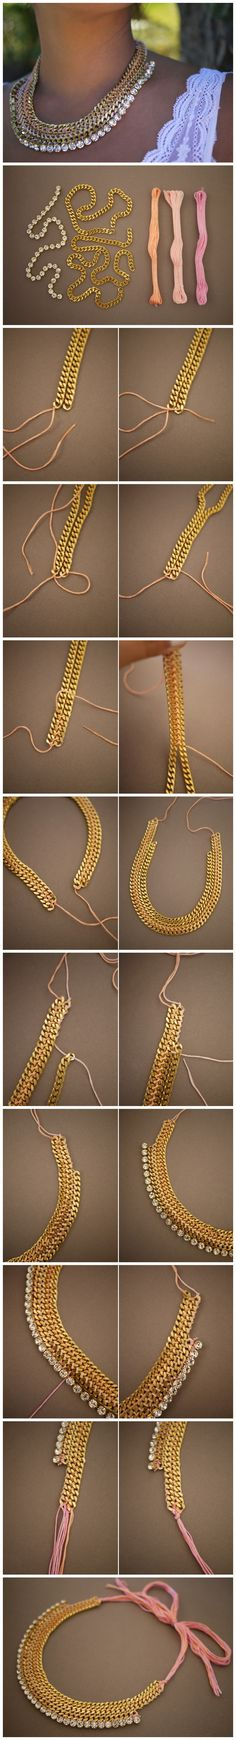 DIY necklace | www.bykaro.nl for your jewelry making supplies